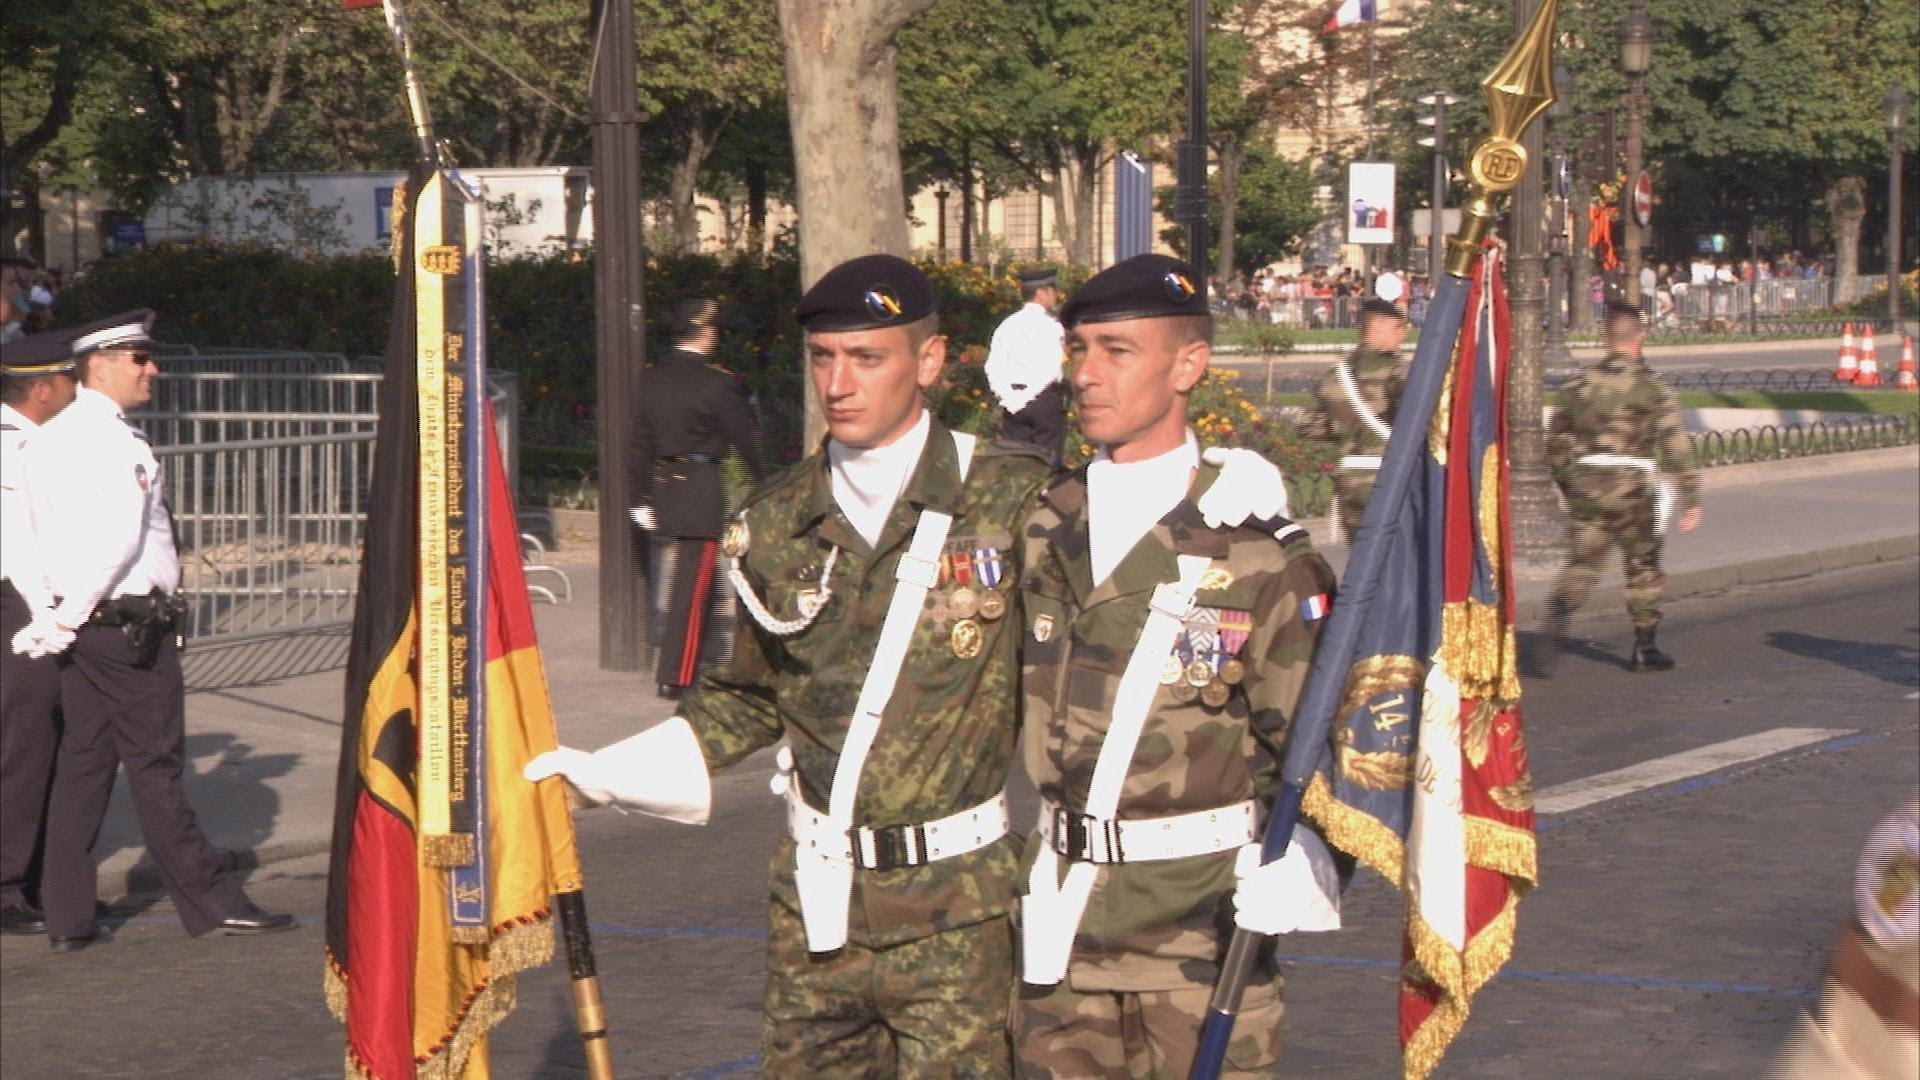 Luxembourg's traditional military parade